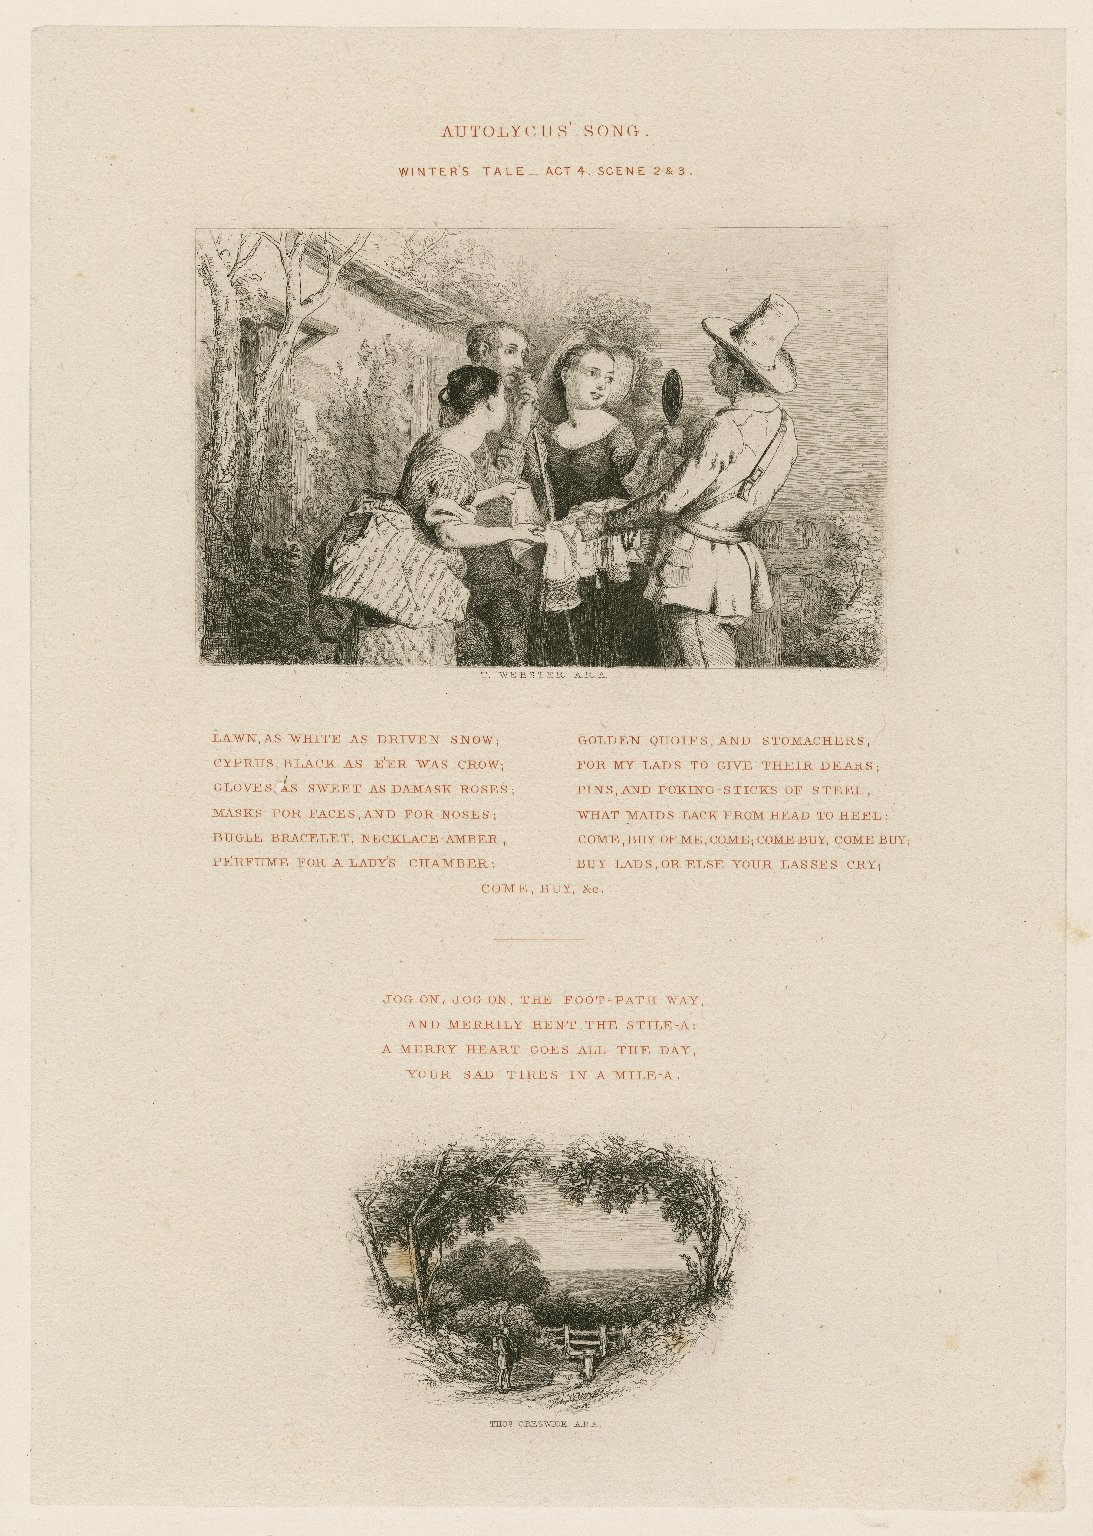 Winter's tale, Autolycus' song, act 4, scene 2 & 3 [i.e. scene 4] [graphic] / [part 1] T. Webster, A.R.A. ; part 2, Thos. Creswick, A.R.A.